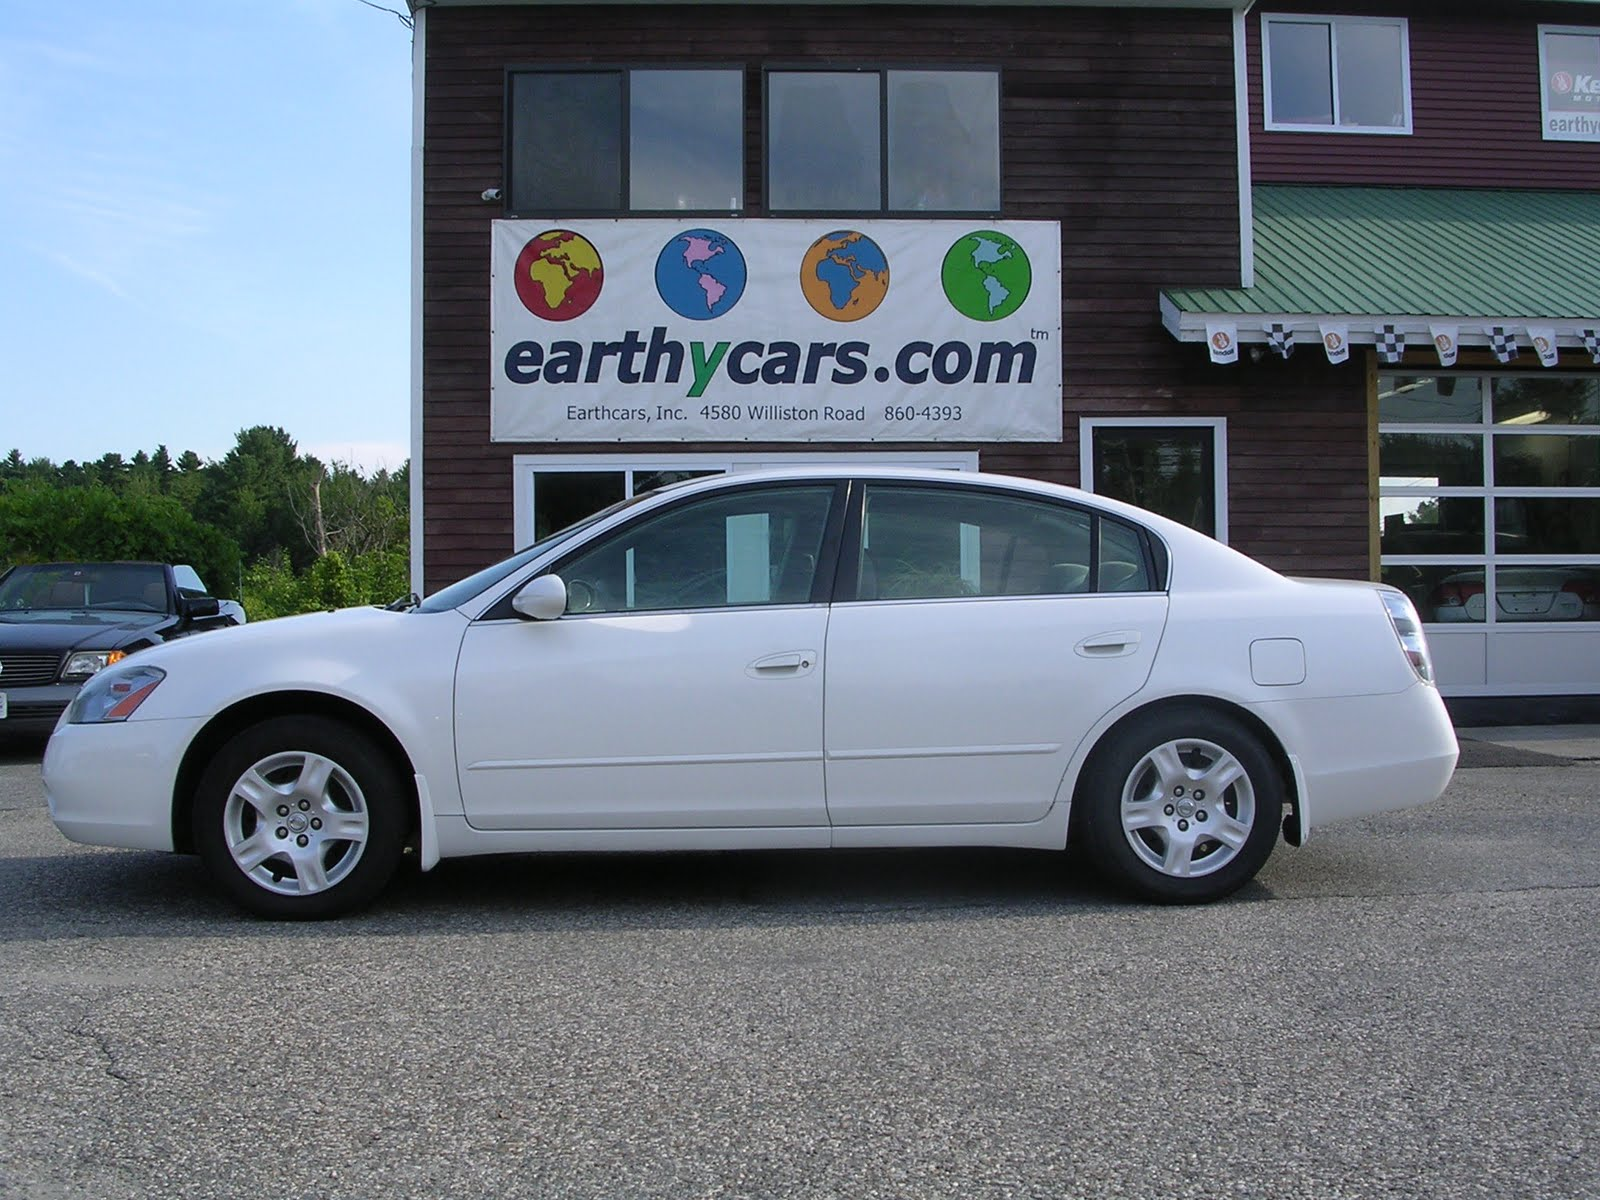 2004 nissan altima information and photos zombiedrive 2004 nissan altima 13 nissan altima 13 vanachro Choice Image